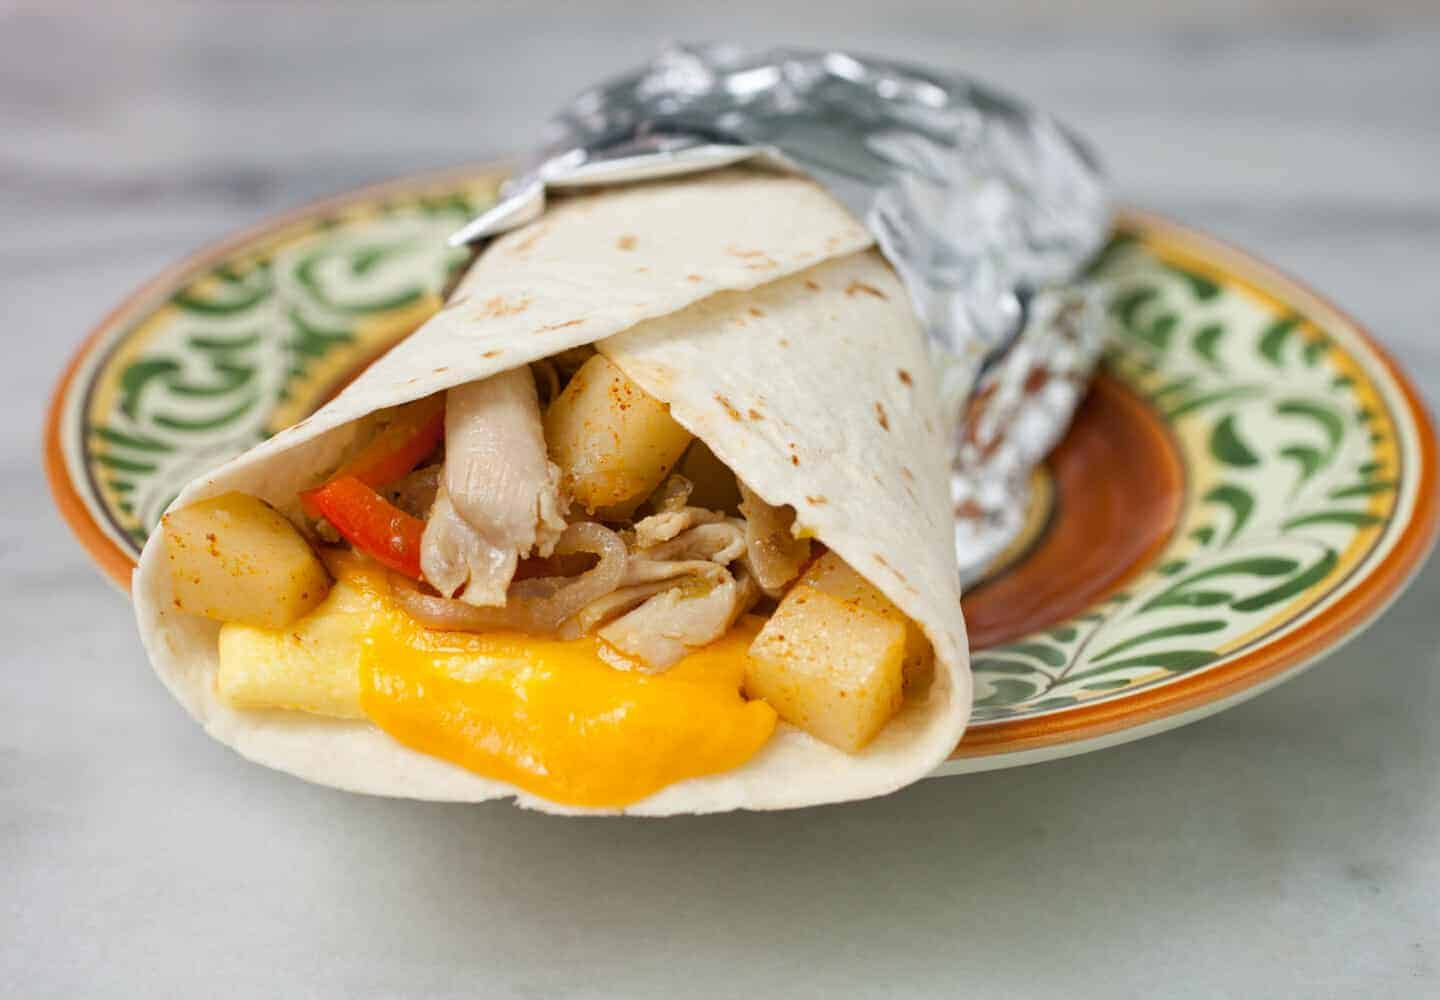 Rotisserie Chicken Breakfast Burritos: These super-cheesy and delicious breakfast burritos use one of my favorite meal shorted (rotisserie chicken) so they are ready to go in just a few minutes! | macheesmo.com